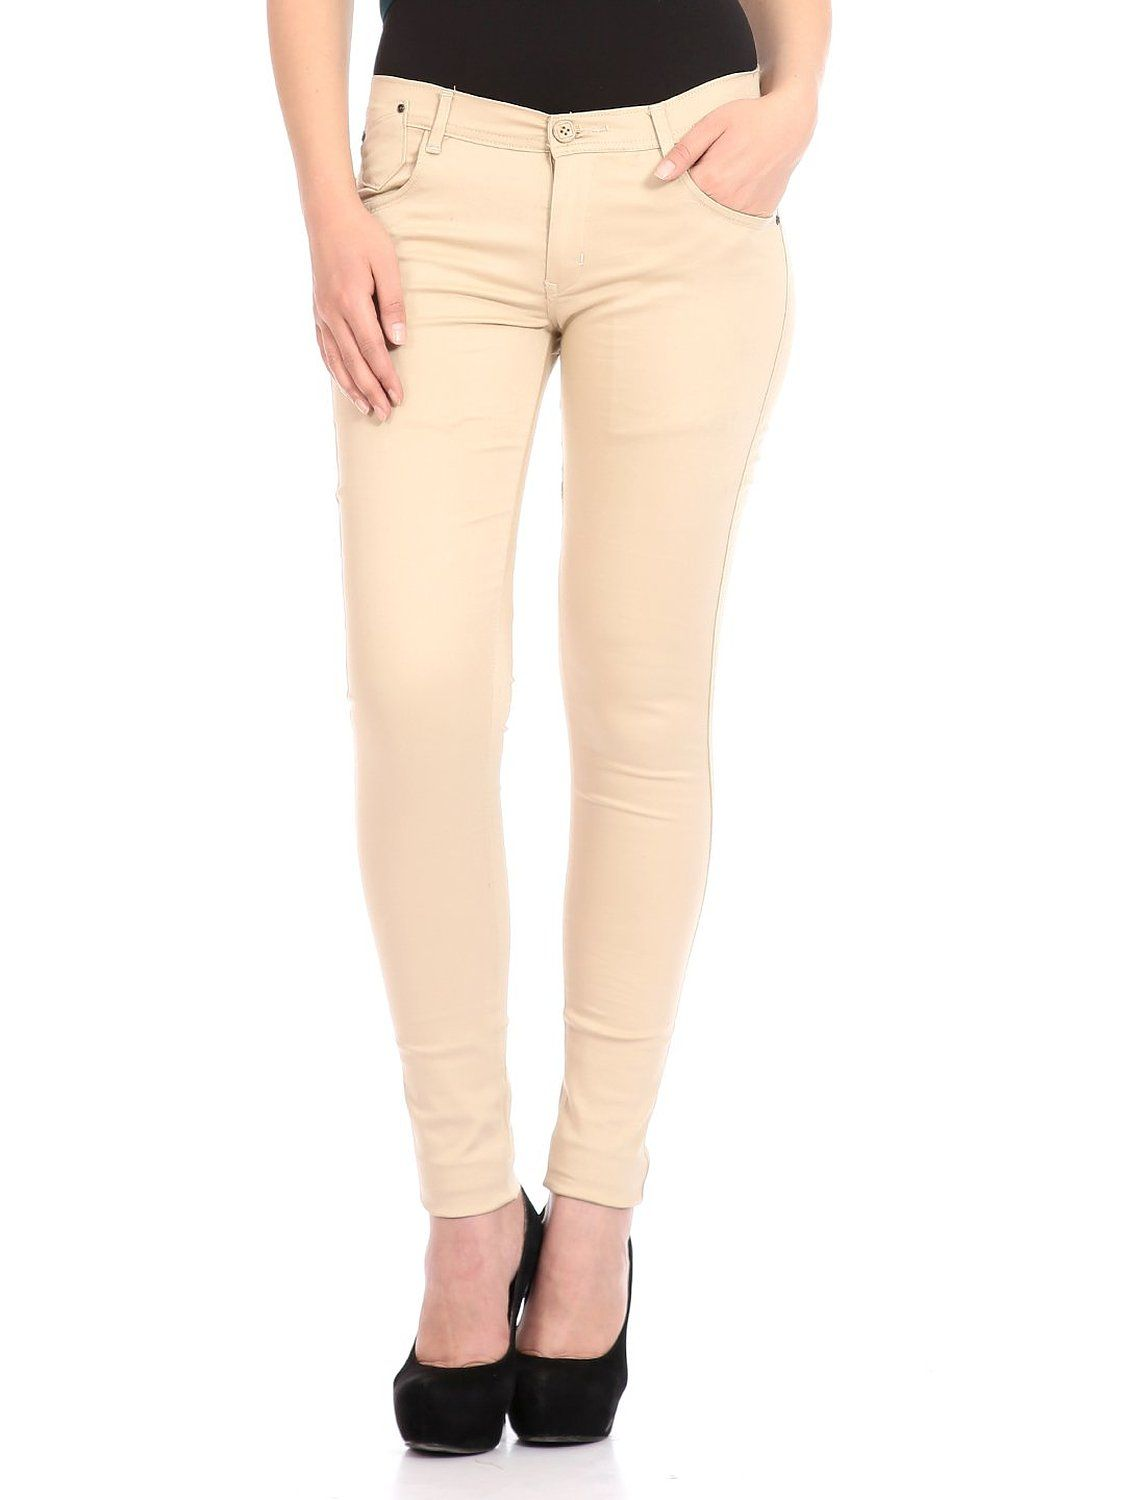 Flyjohn Beige Women's off-white Cotton Lycra Trousers Off-White